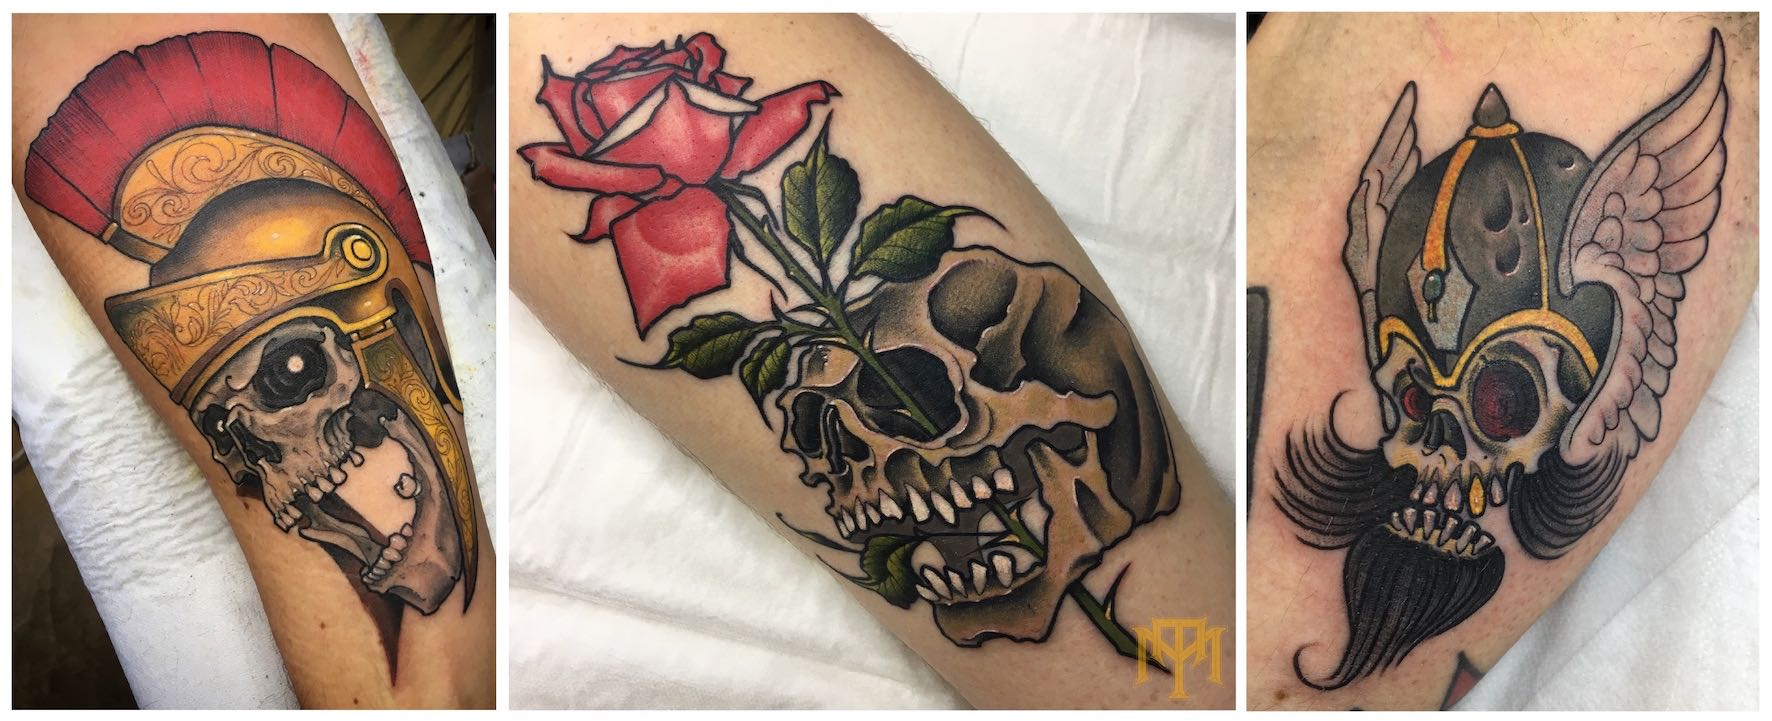 A selection of tattoos done by Nic Lewis